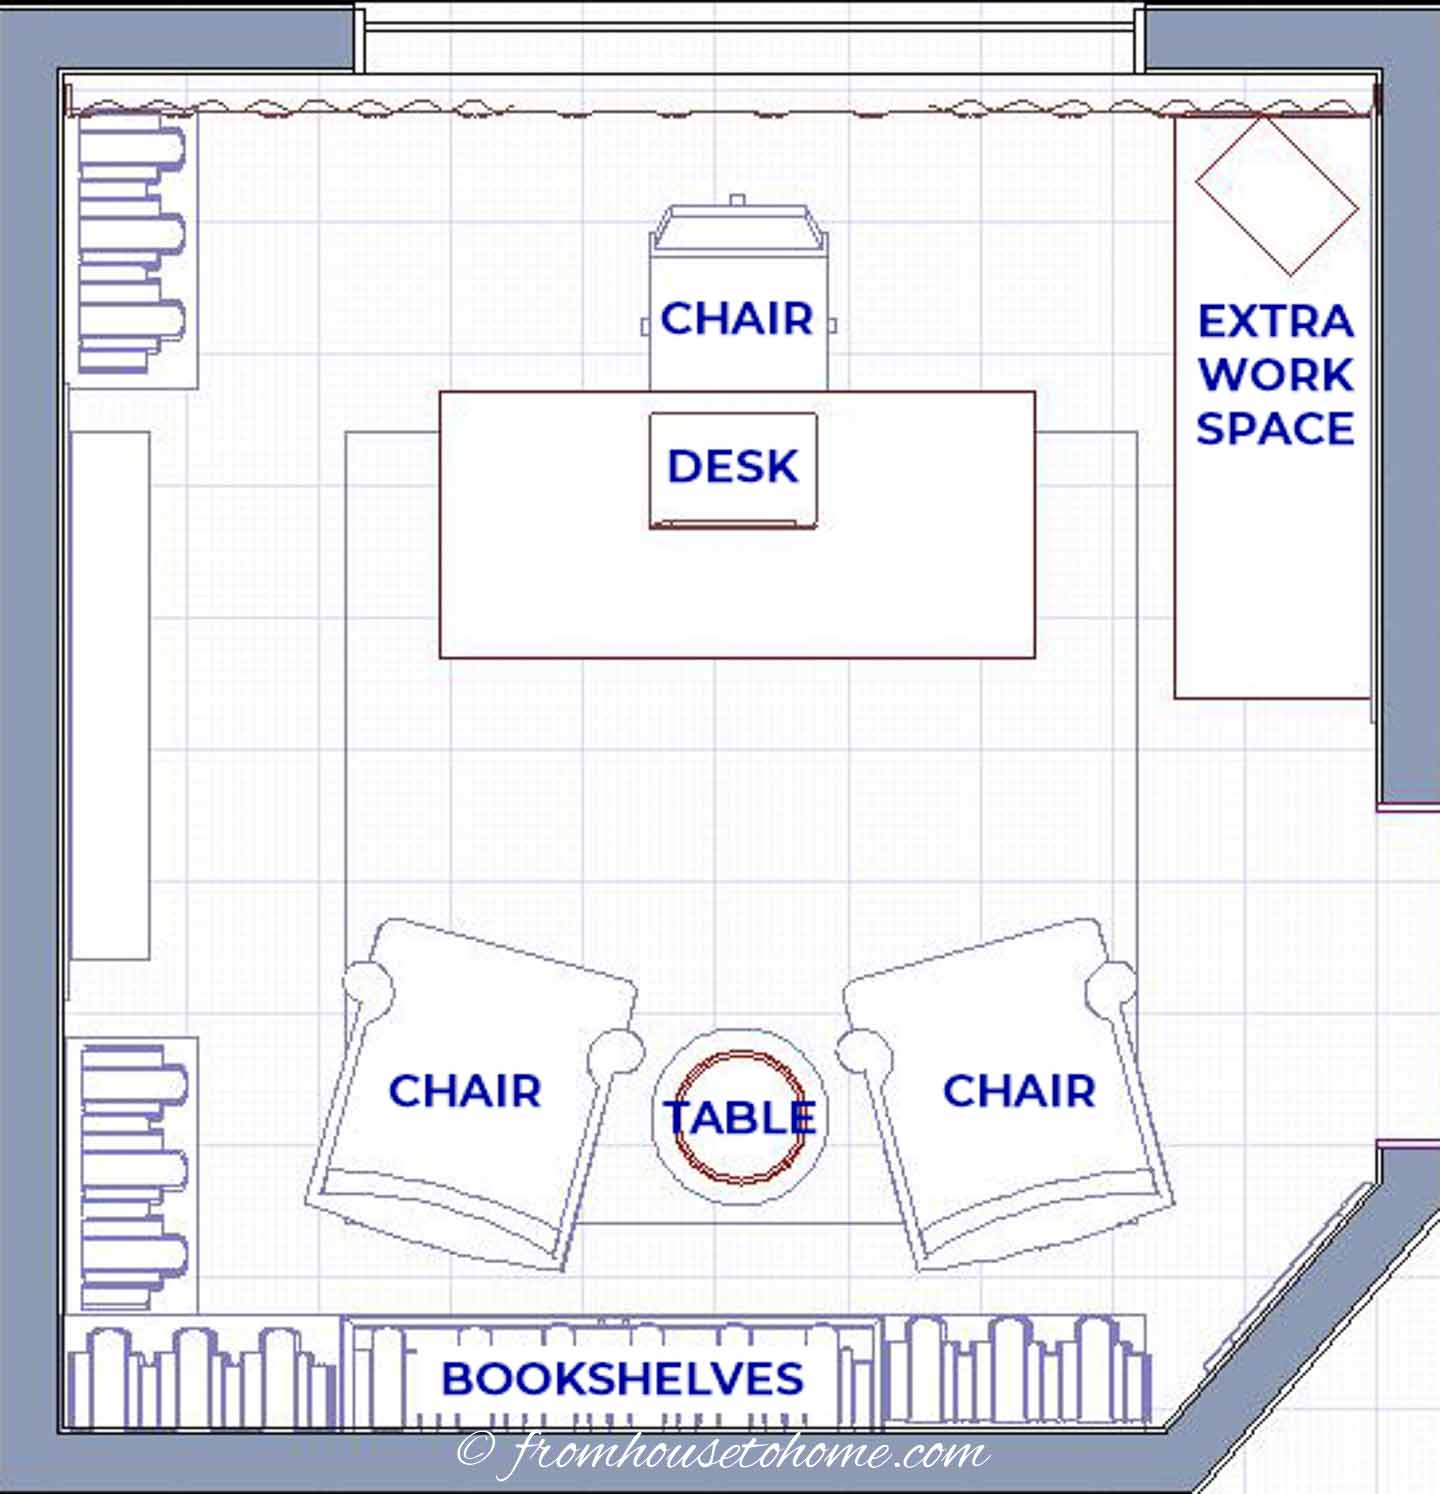 Traditional small home office layout with 2 chairs and an extra work space